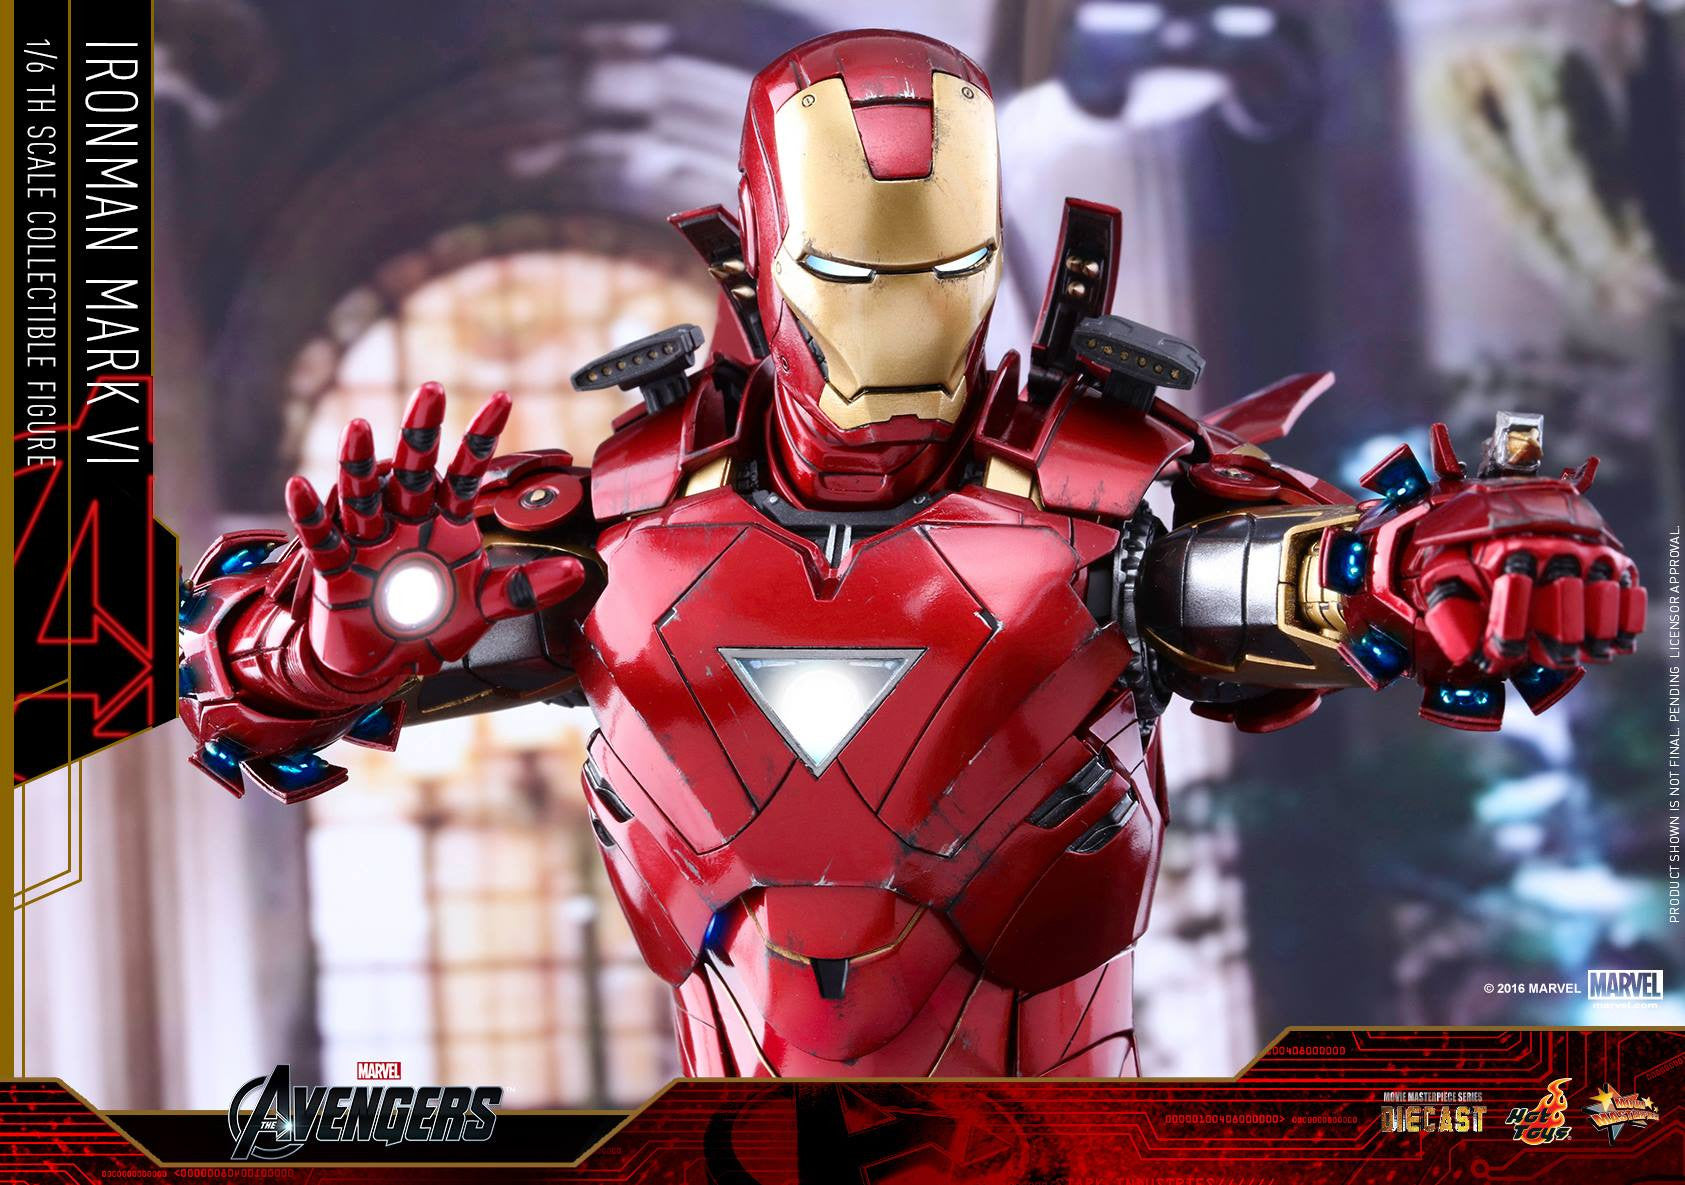 Hot Toys - MMS378D17 - The Avengers - Iron Man Mark VI (DIECAST) (Normal Edition) - Marvelous Toys - 3